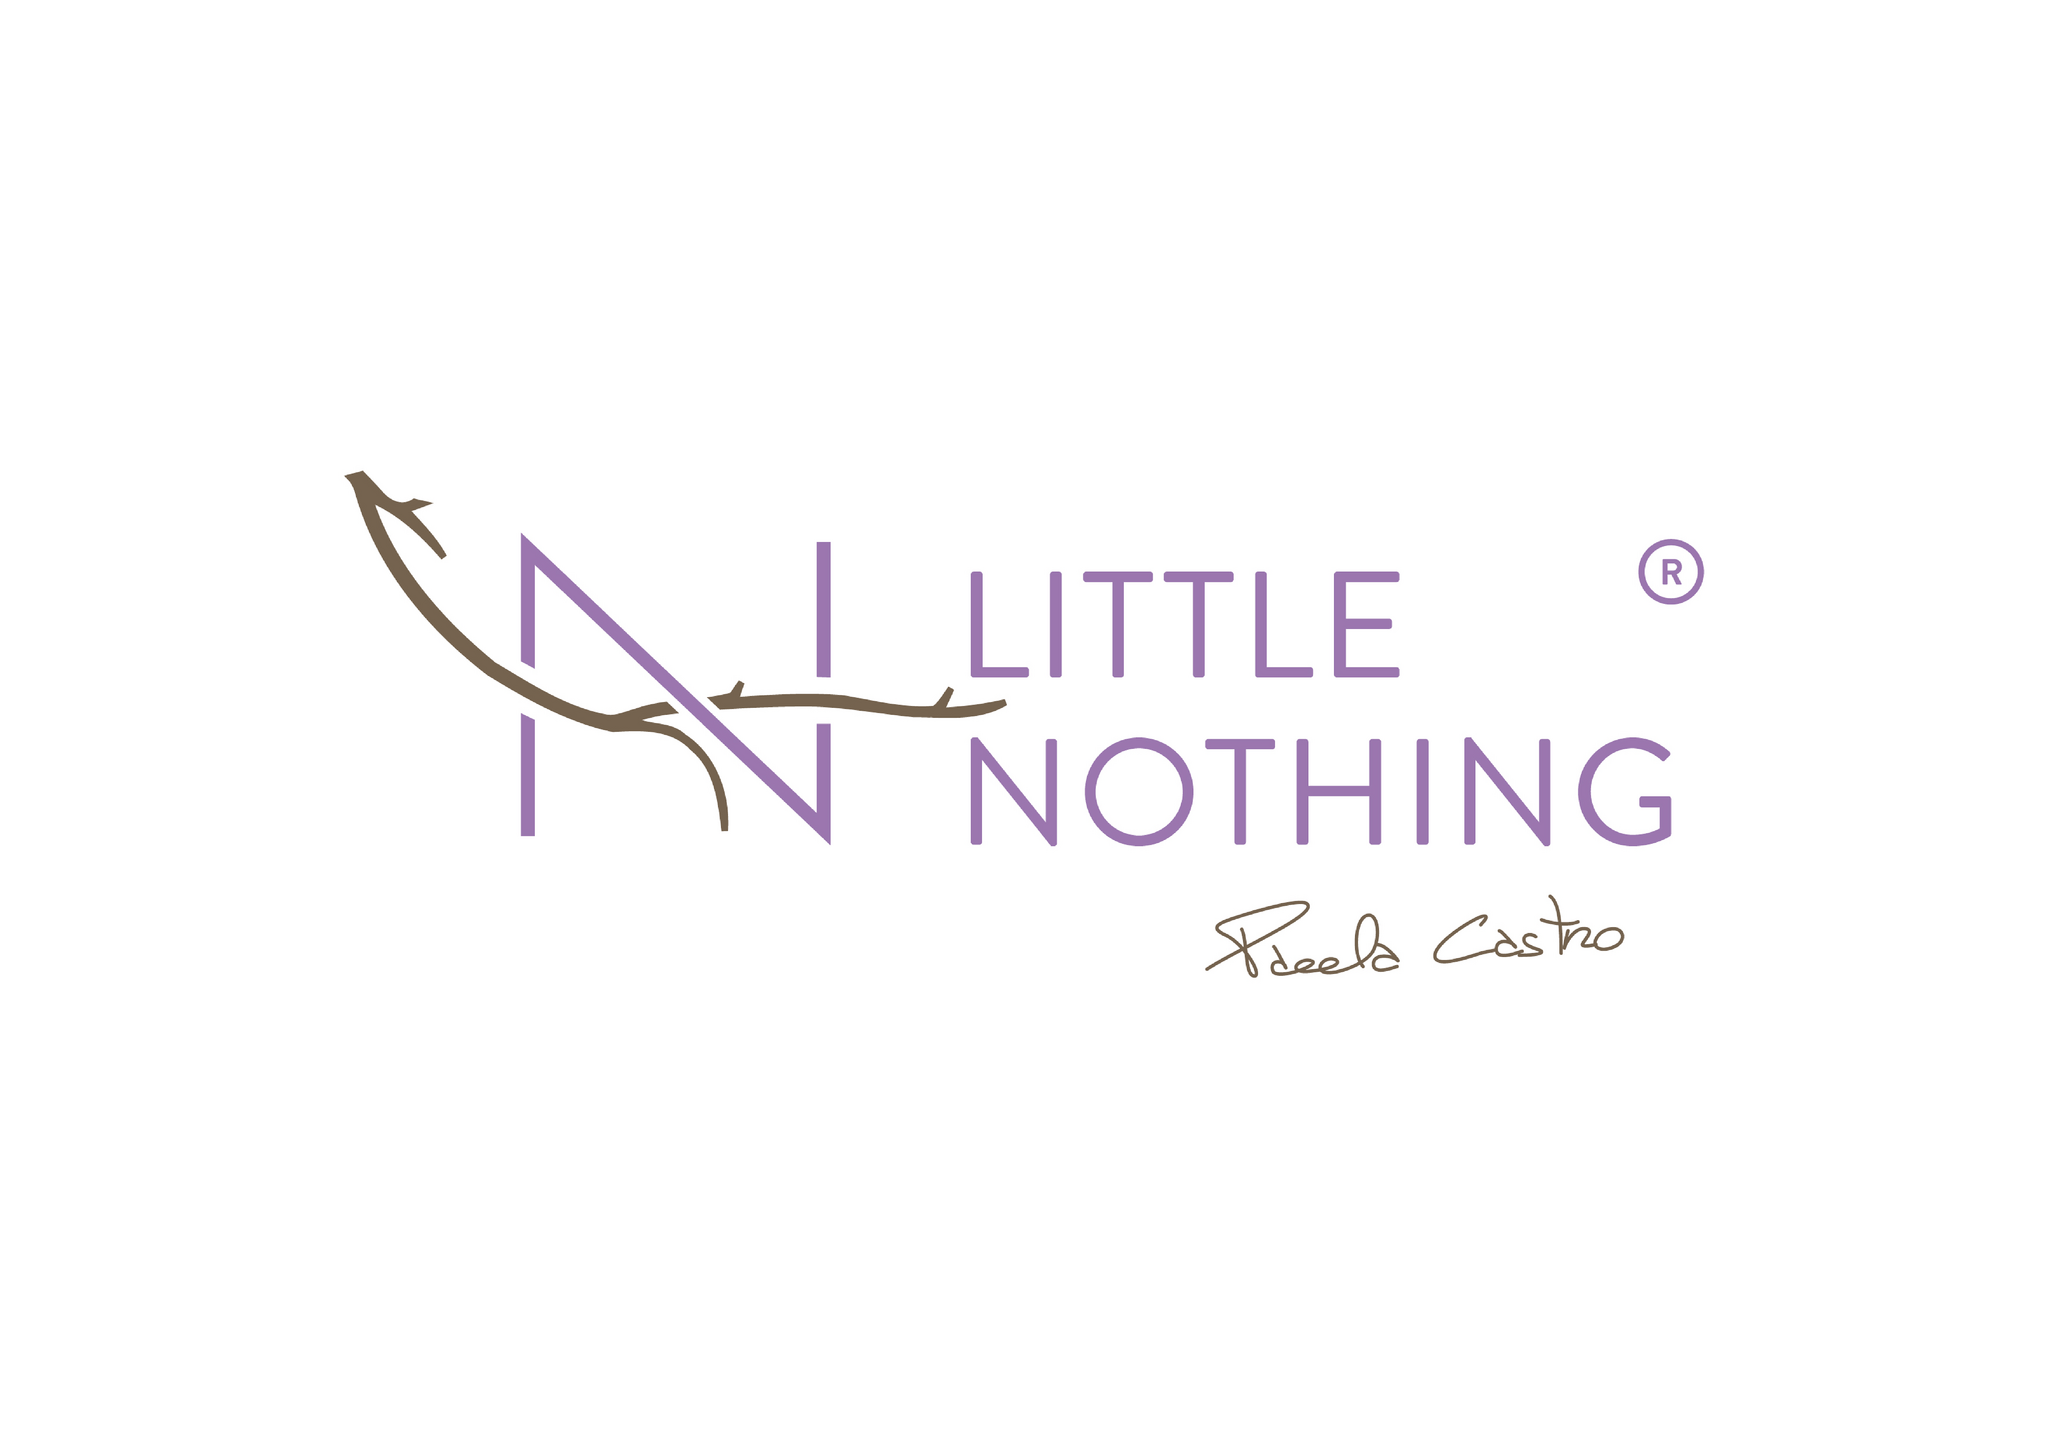 Little Nothing